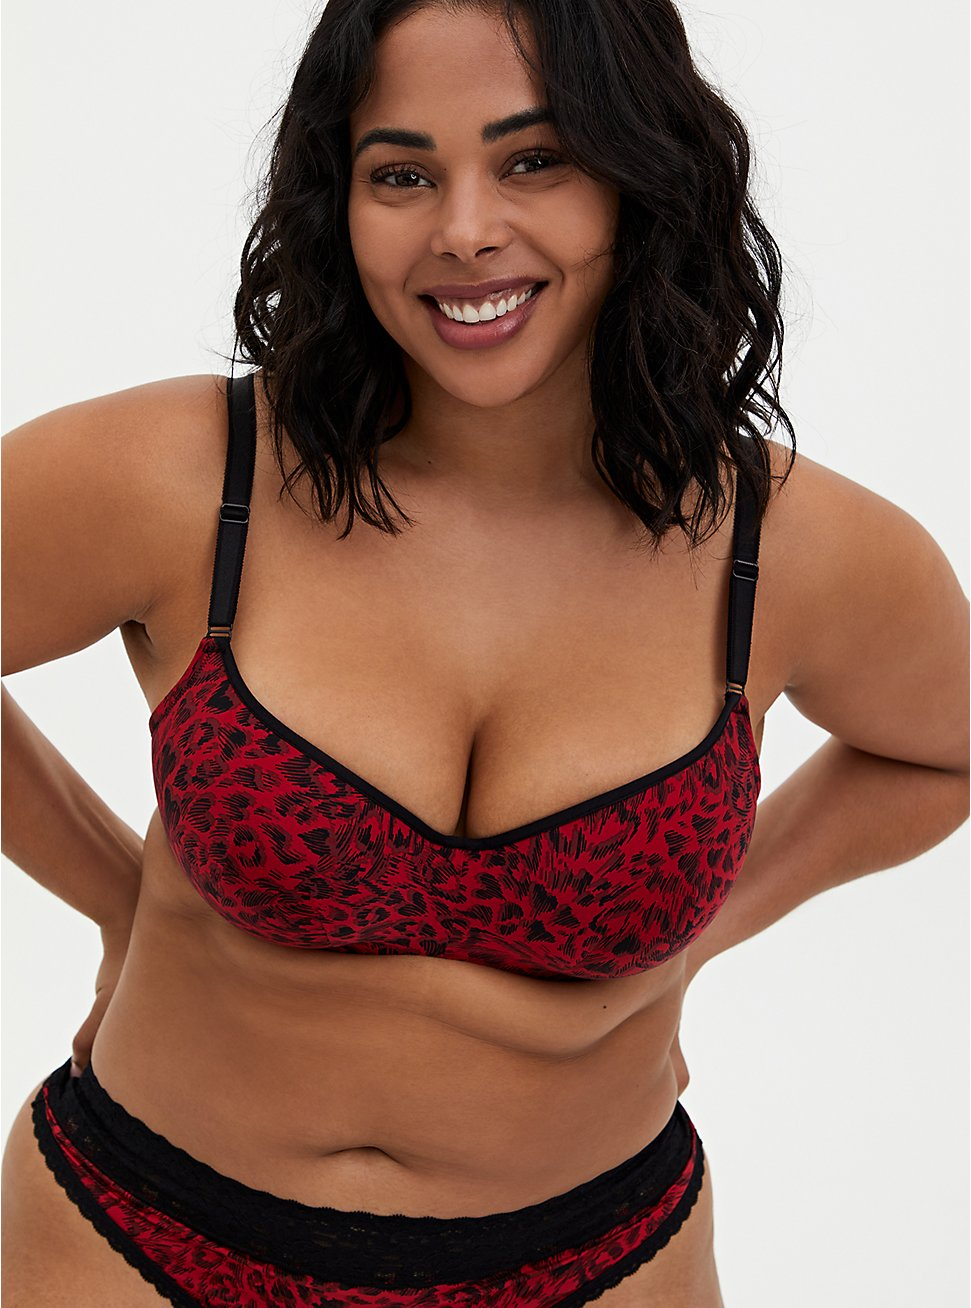 Red Heart 360° Back Smoothing™ Lightly Lined Full Coverage Balconette Bra , HEART SWIRL JESTER RED, hi-res